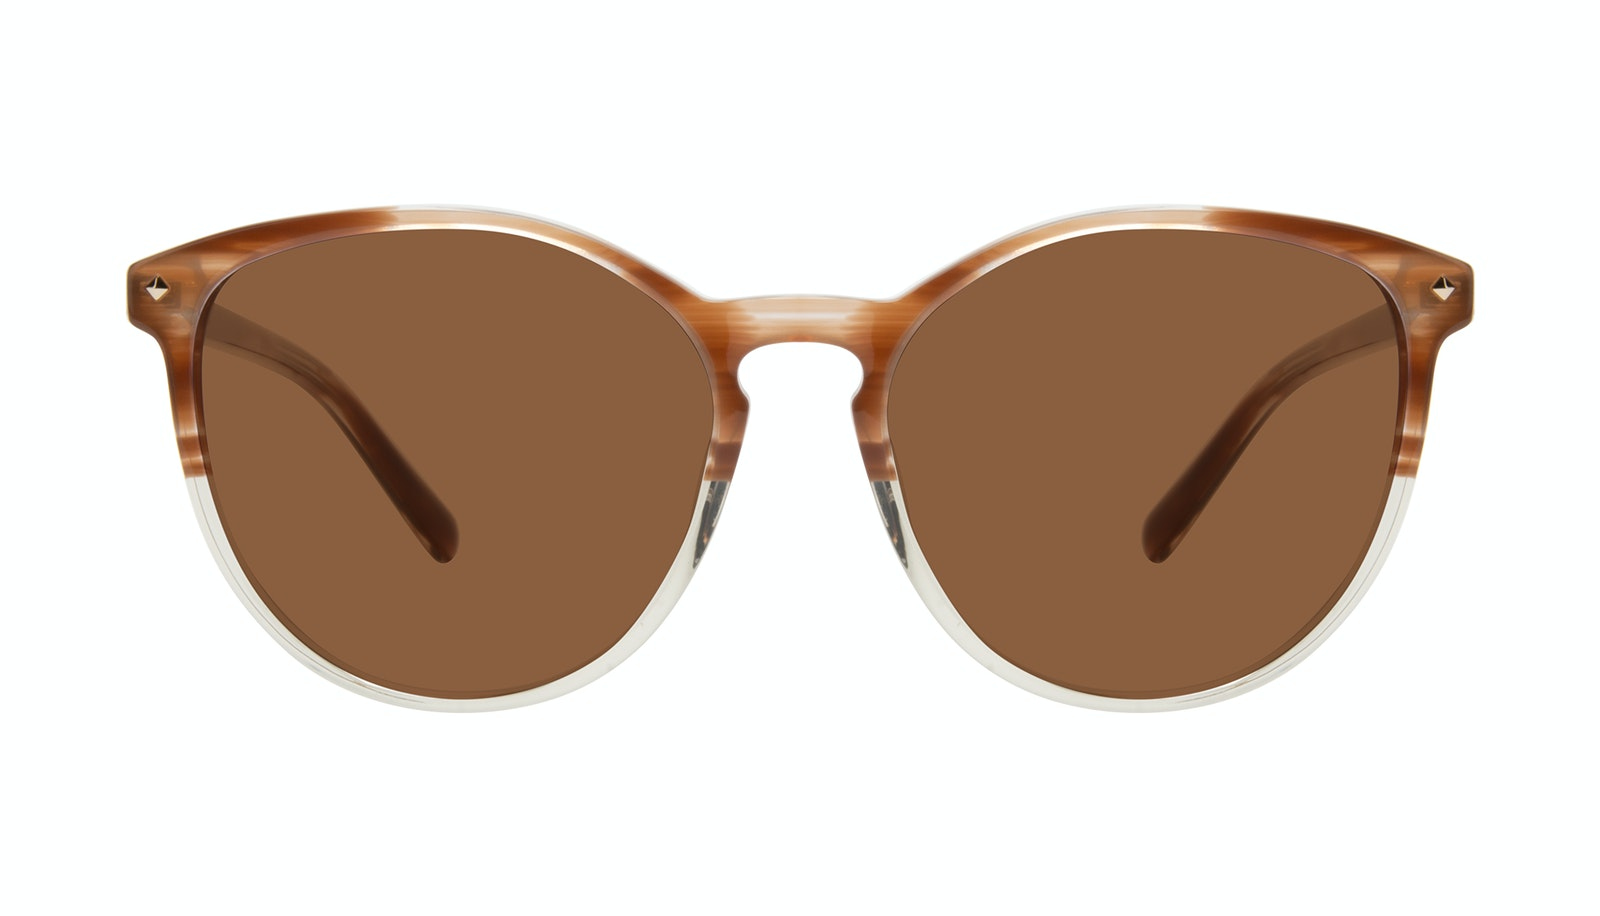 Affordable Fashion Glasses Round Sunglasses Women Viva Tan